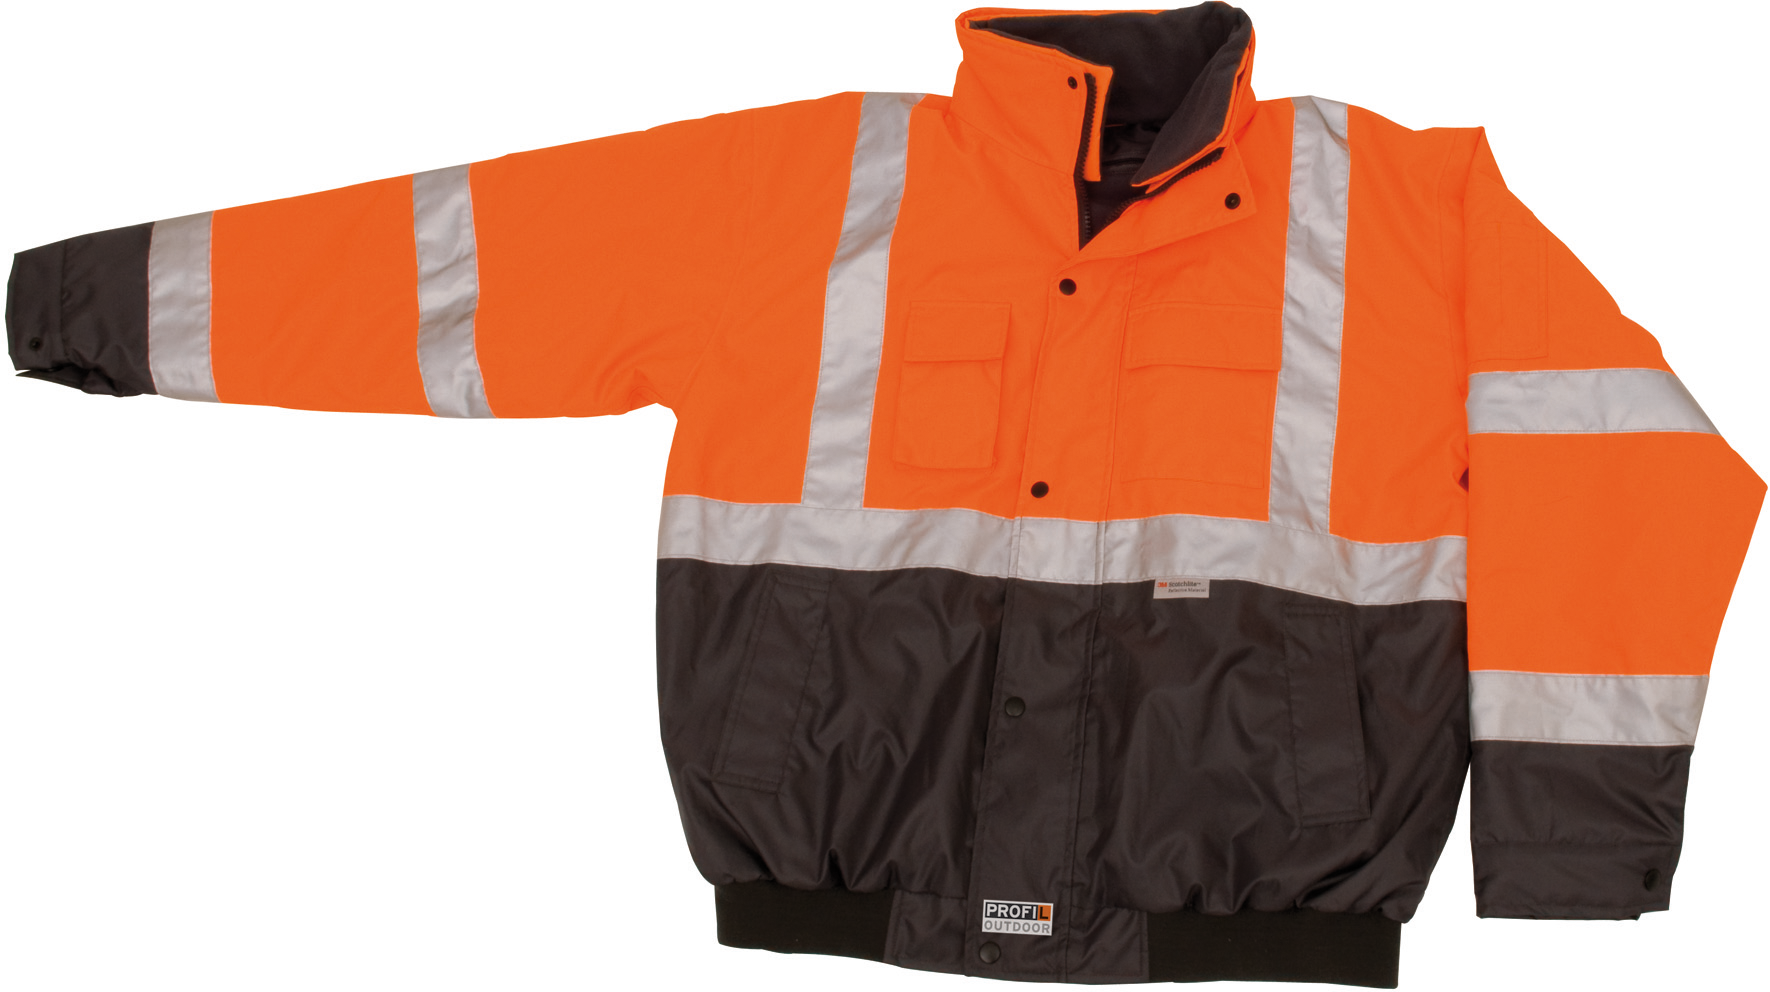 Warn-/Wetterschutz Jacke orange, S PROFIL